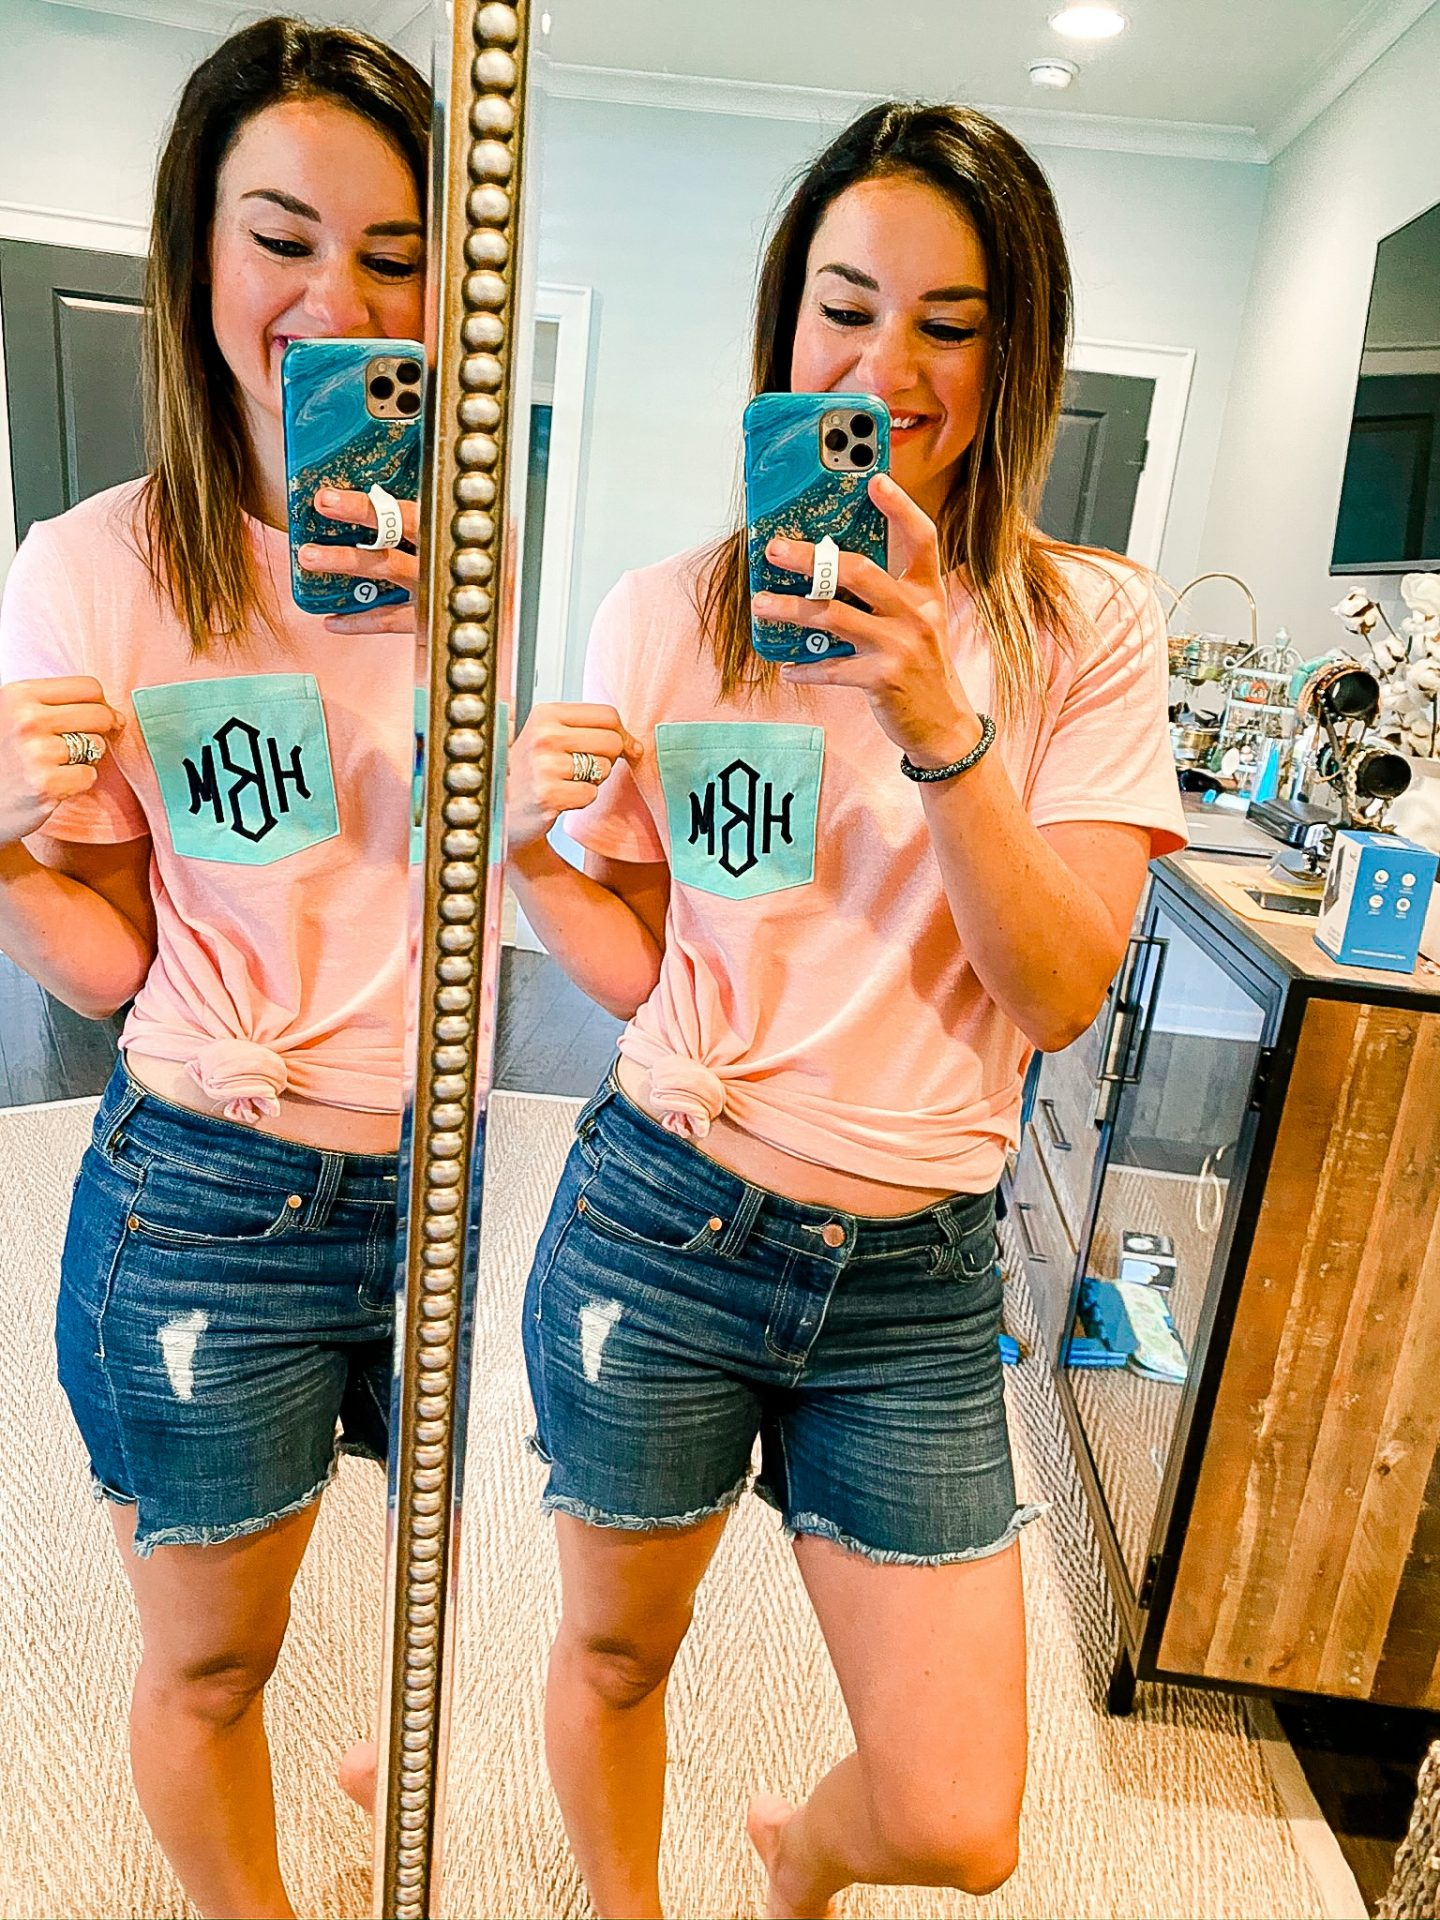 4th of July Clothing Sales by Alabama Life + Sales blogger, Heather Brown // My Life Well Loved